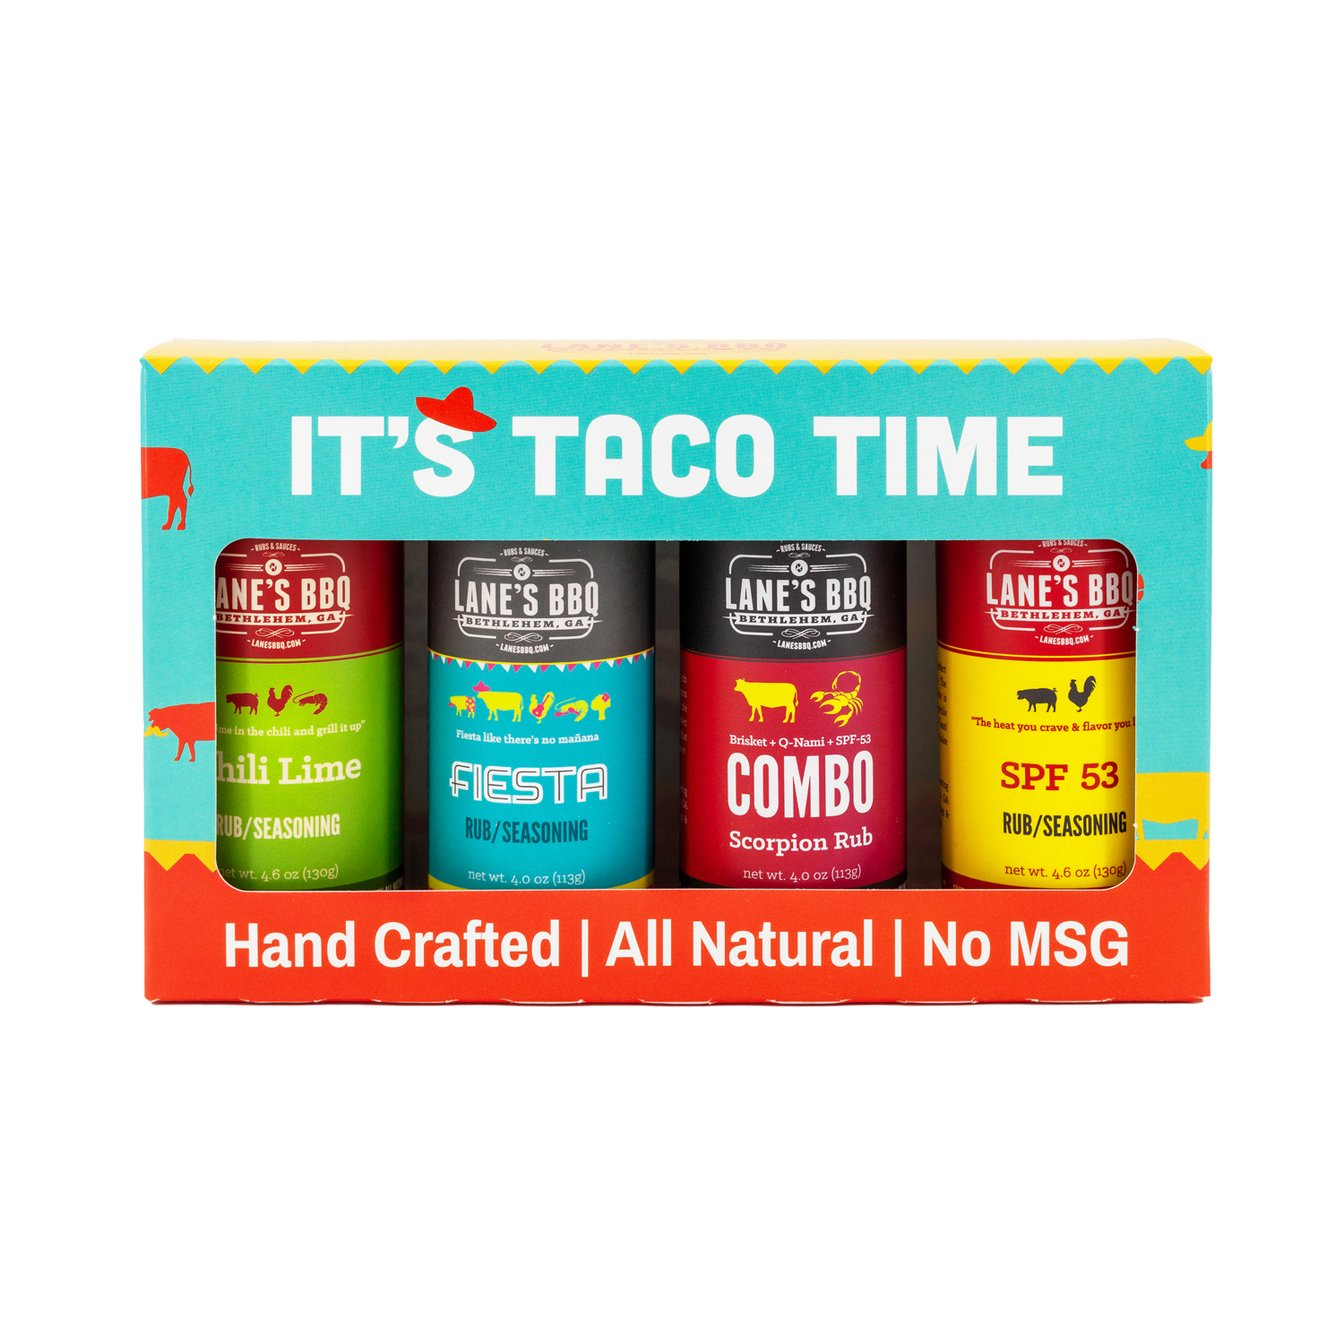 its-taco-time-front_1344x1344